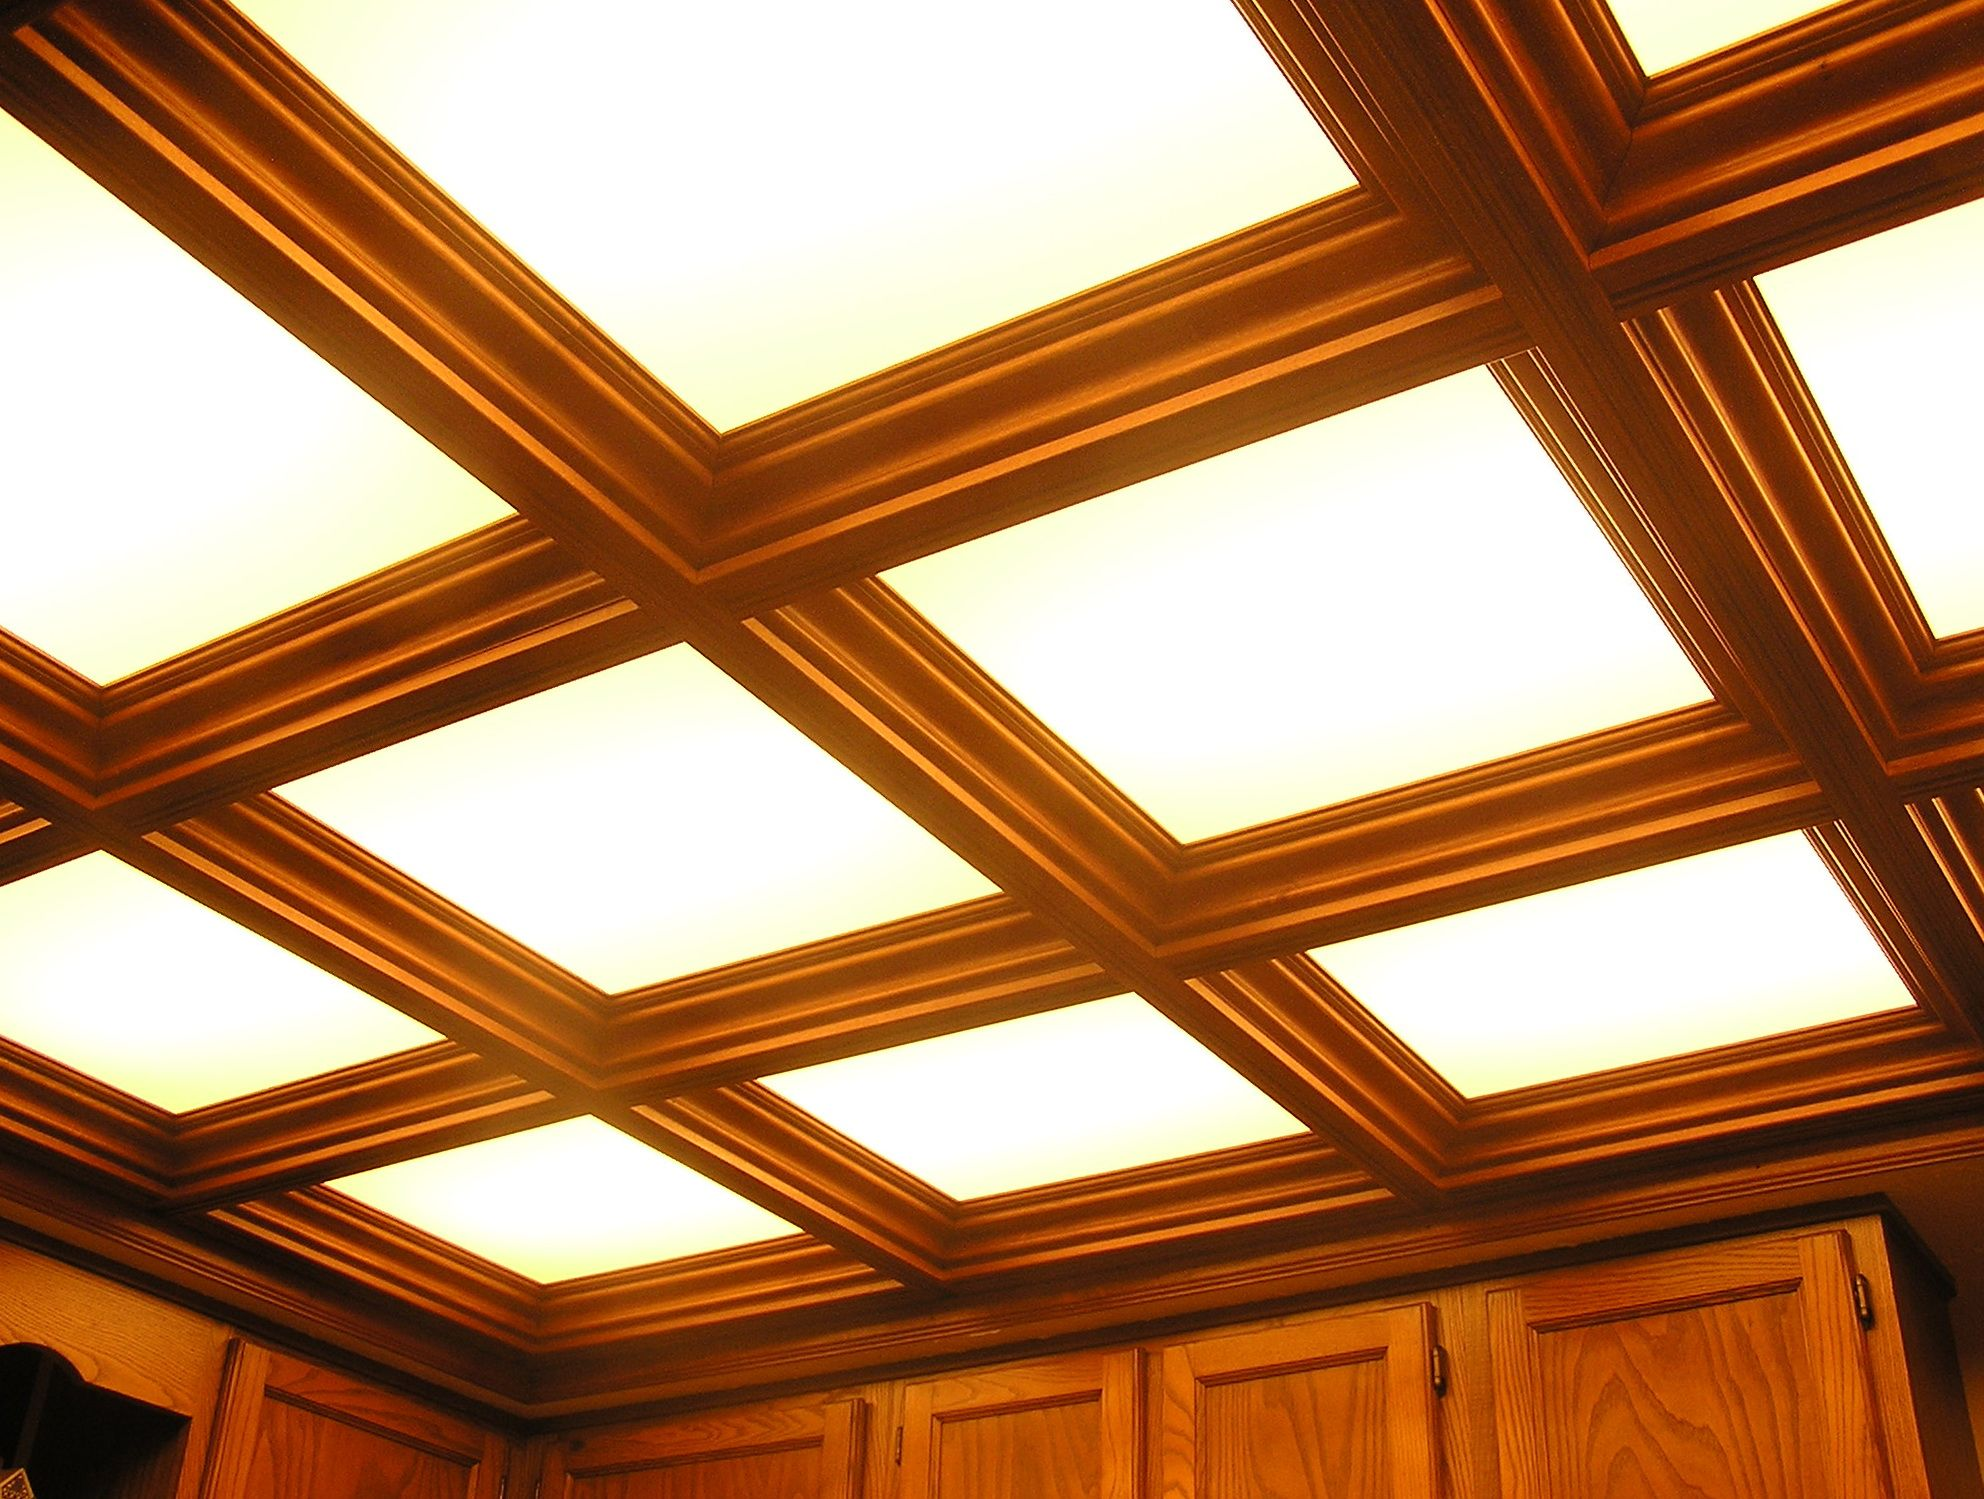 Wood Ceiling Tiles | Tile Design Ideas